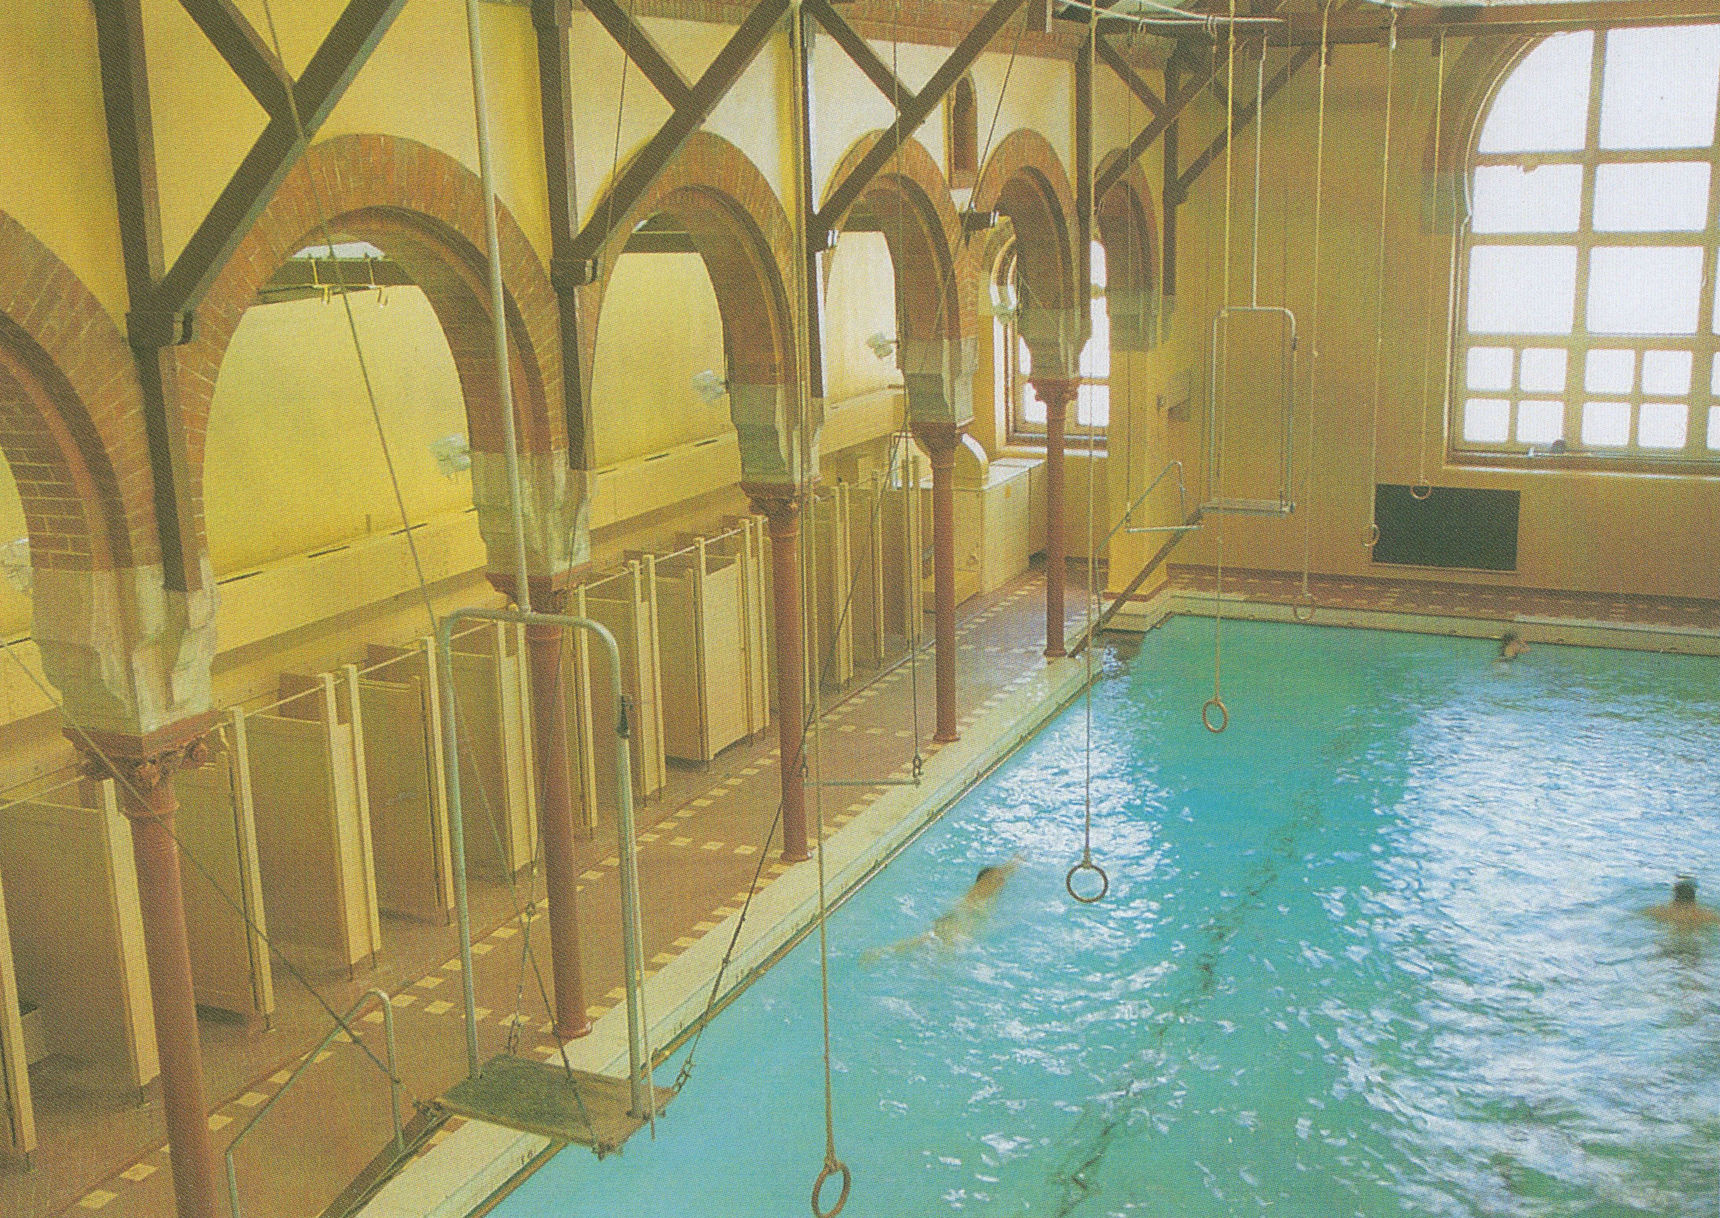 Drumsheugh Baths is situated on a steep site overlooking the Dean Village.